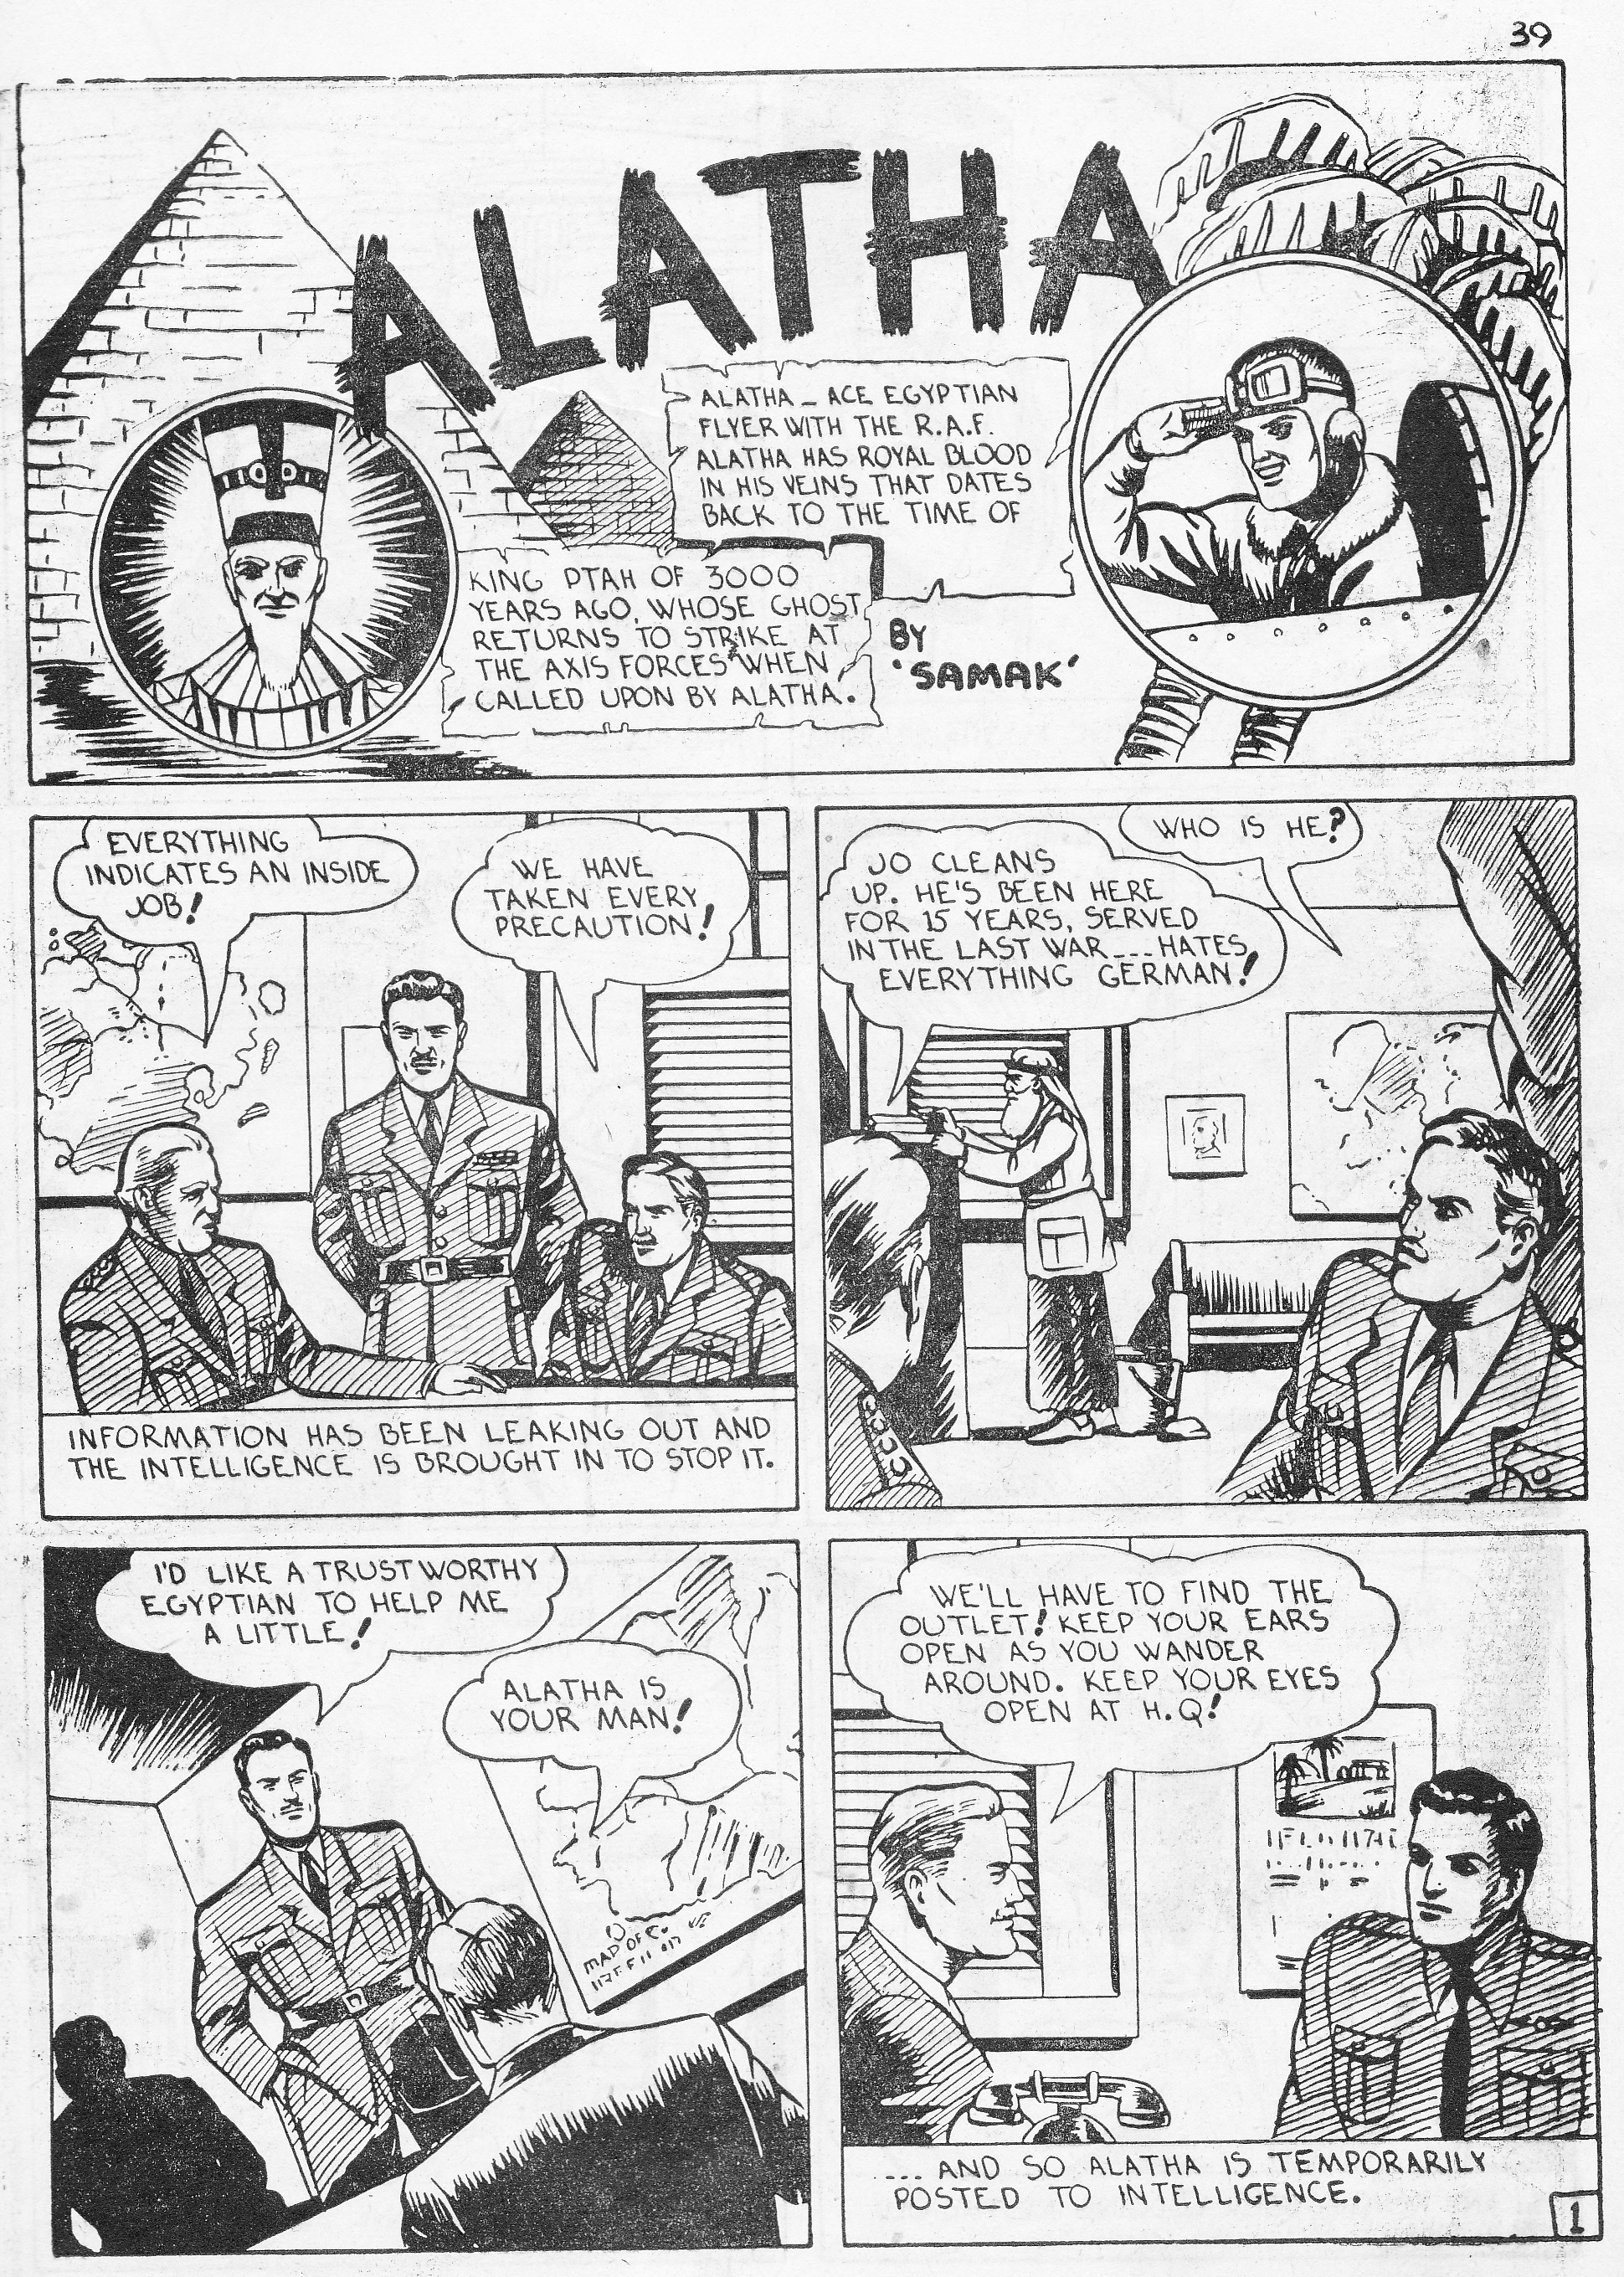 C:\Users\Robert\Documents\CARTOONING ILLUSTRATION ANIMATION\IMAGE CARTOON\IMAGE CARTOON A\ALATHA. Three Aces, 1-5, May 1942, 39.jpg